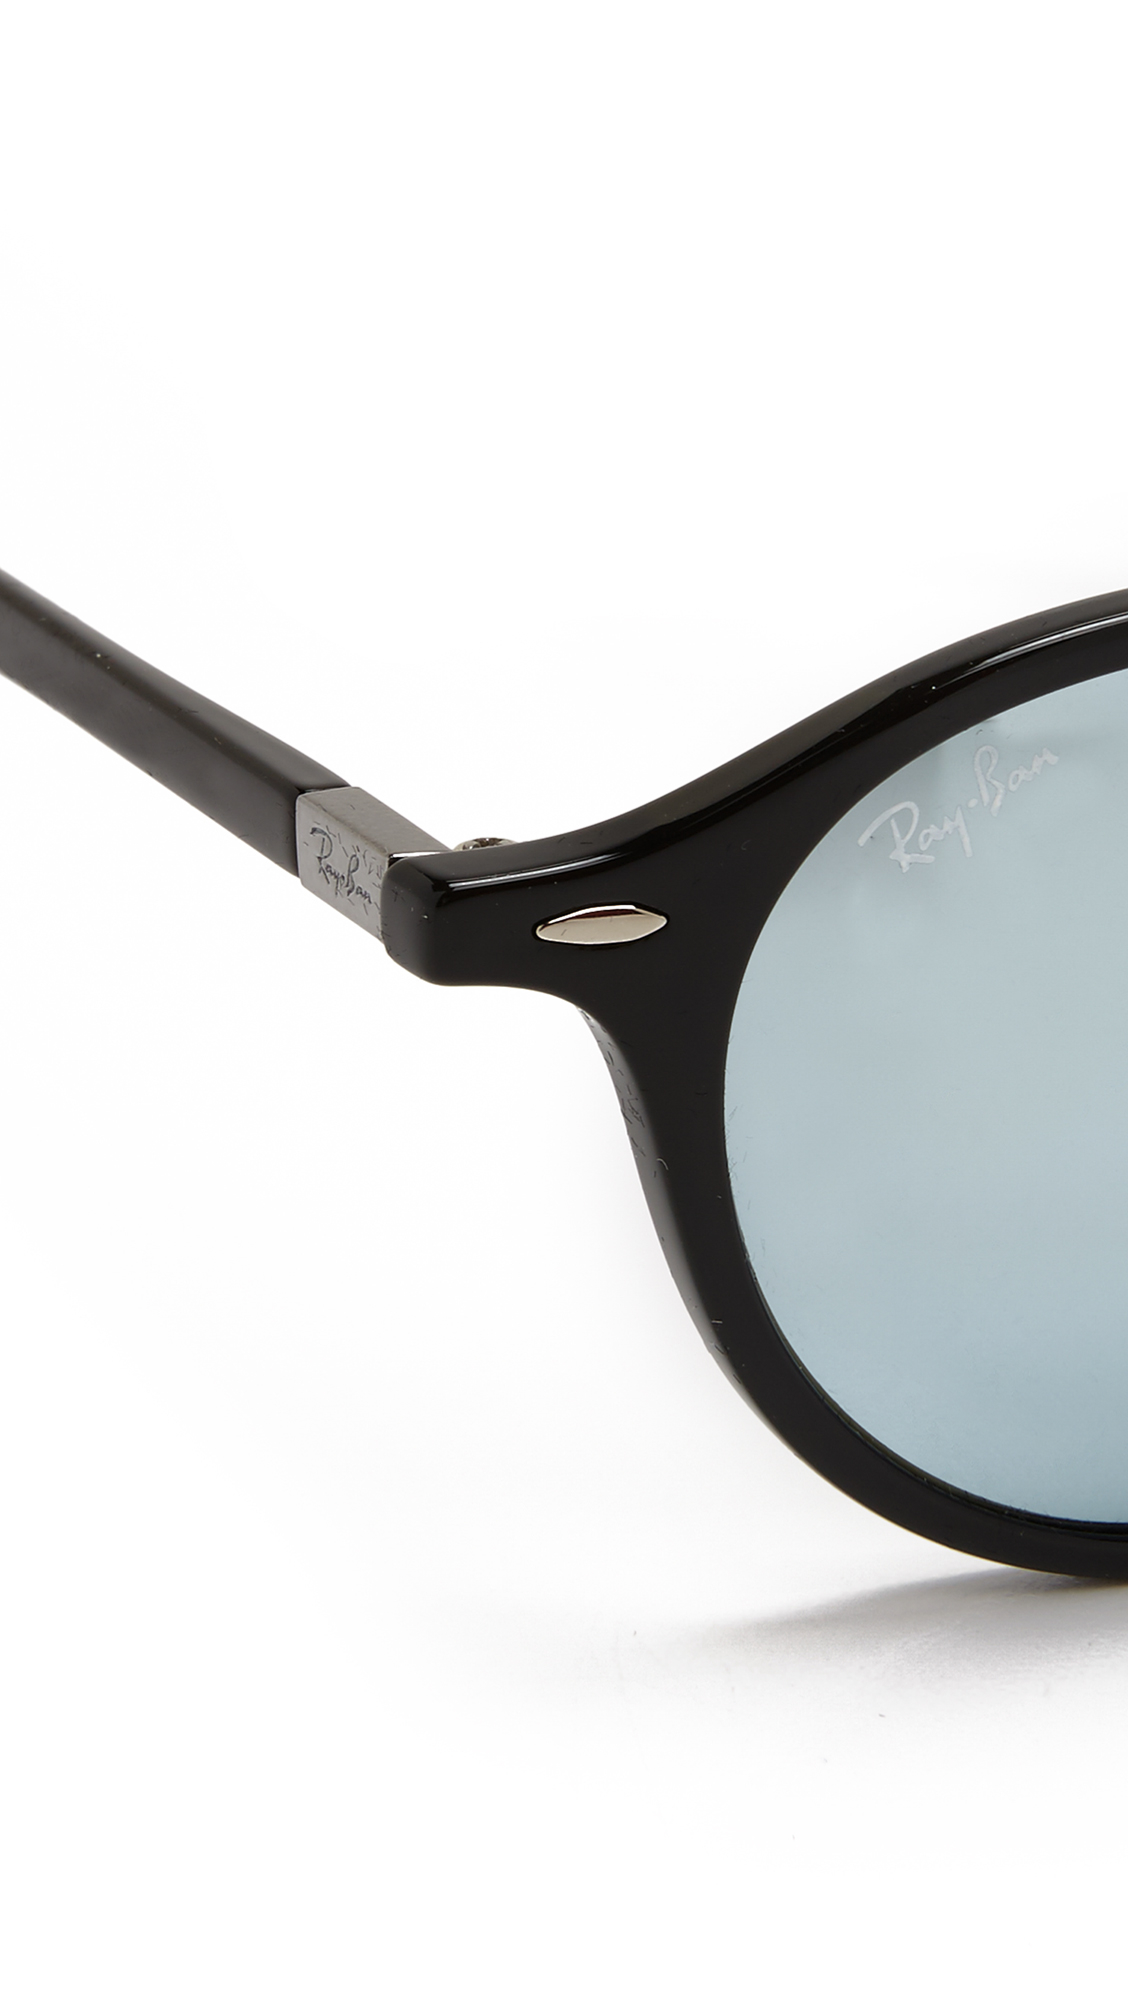 2308eed46e6 Lyst - Ray-Ban Full Fit Round Sunglasses in Black for Men